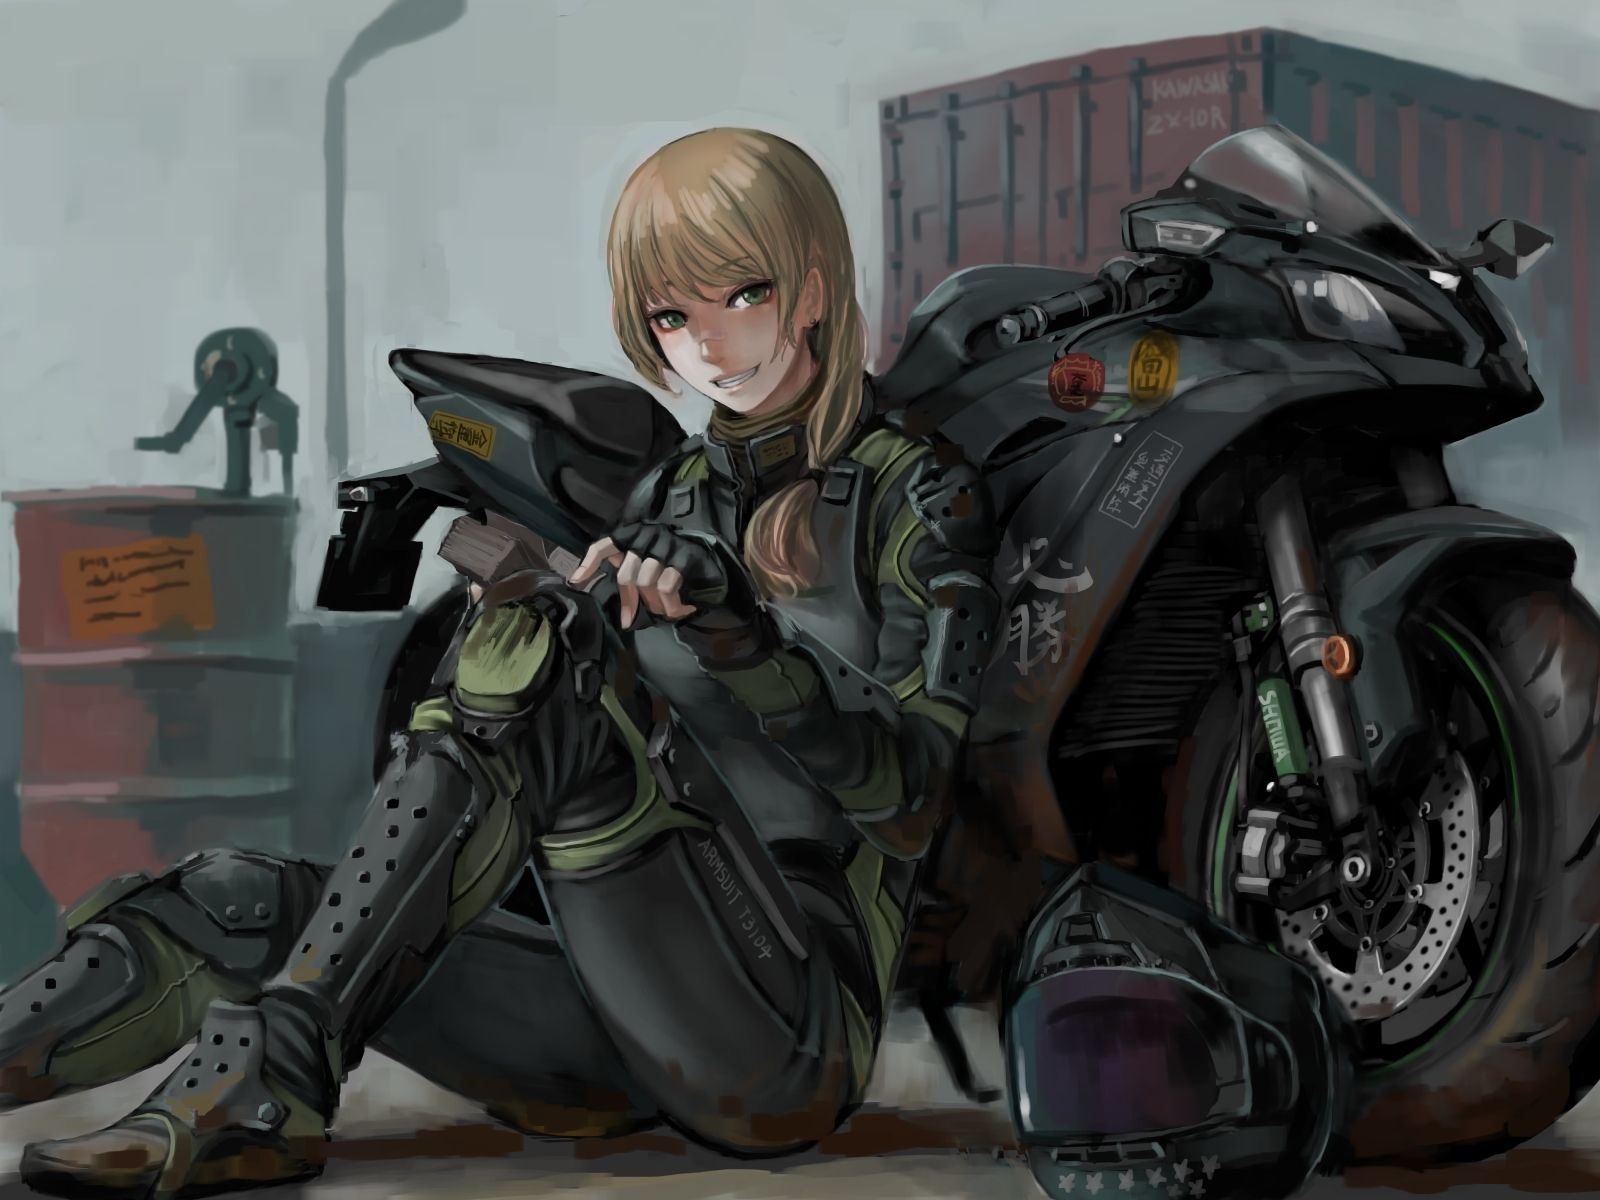 Anime girl smiling bodysuit motorcycle blonde armored